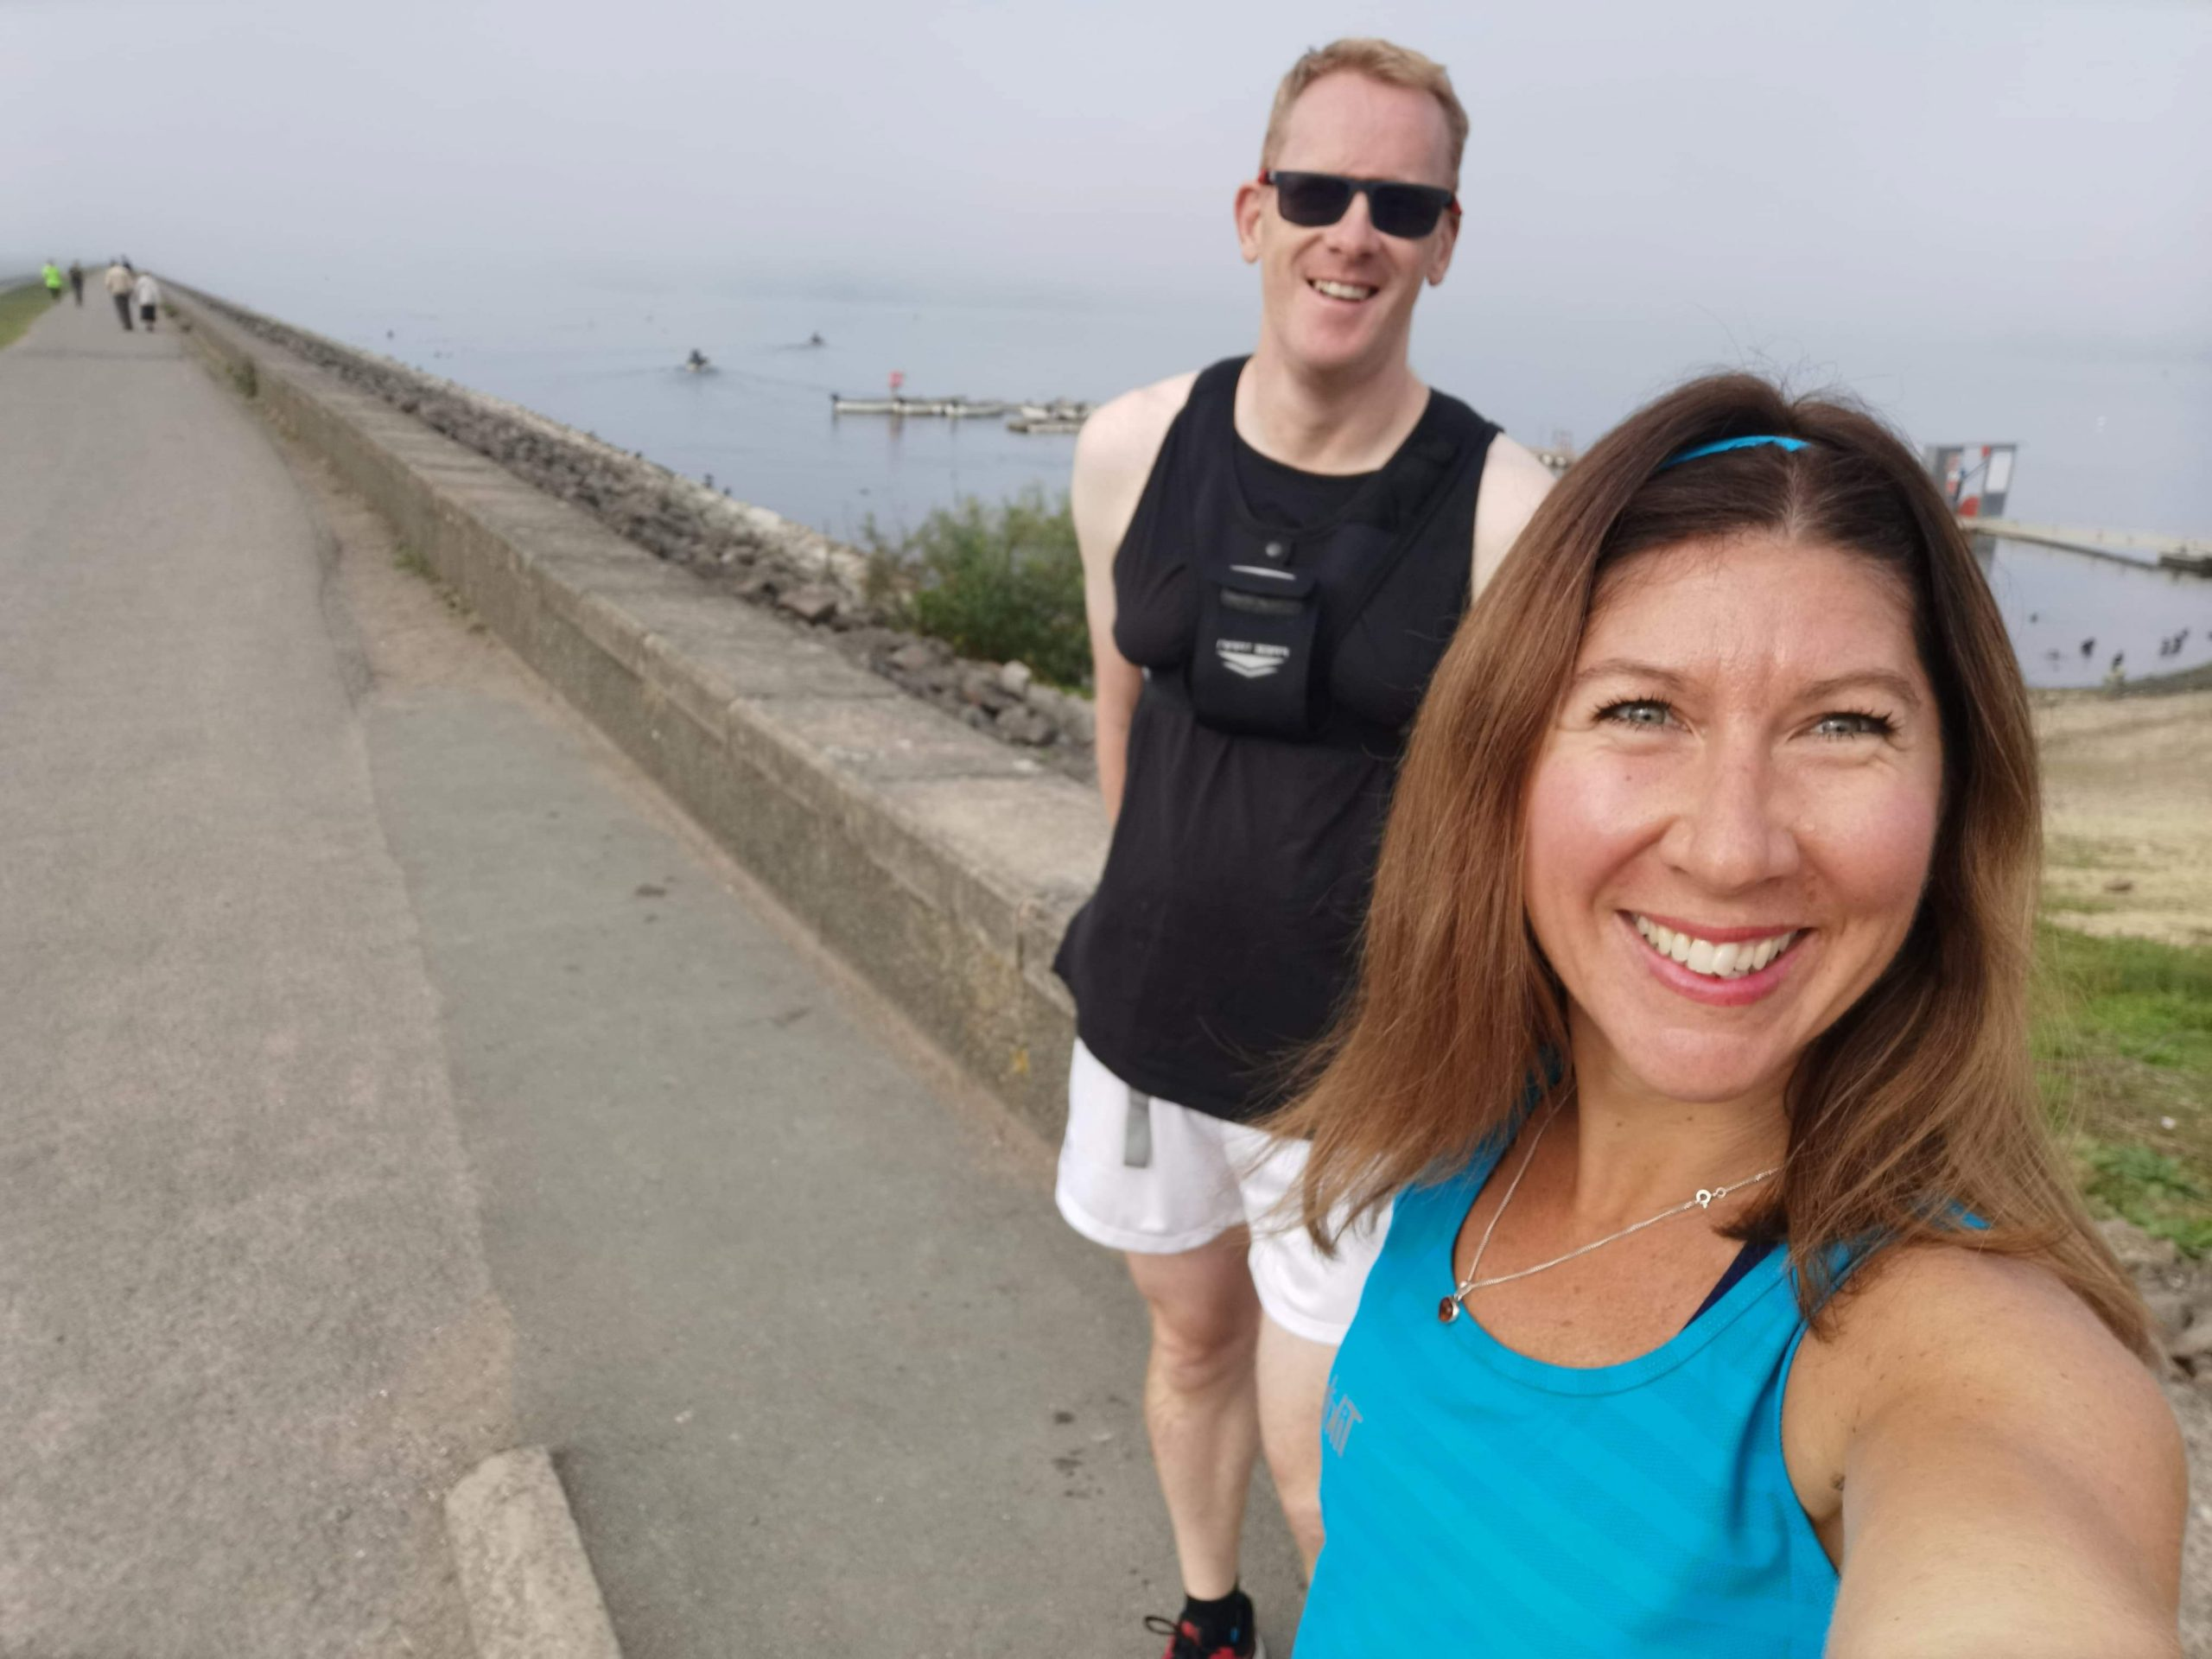 Photo shows Andy wearing black running vest and white shorts with friend and long-distance running partner, Rachel in foreground, wearing blue vest.